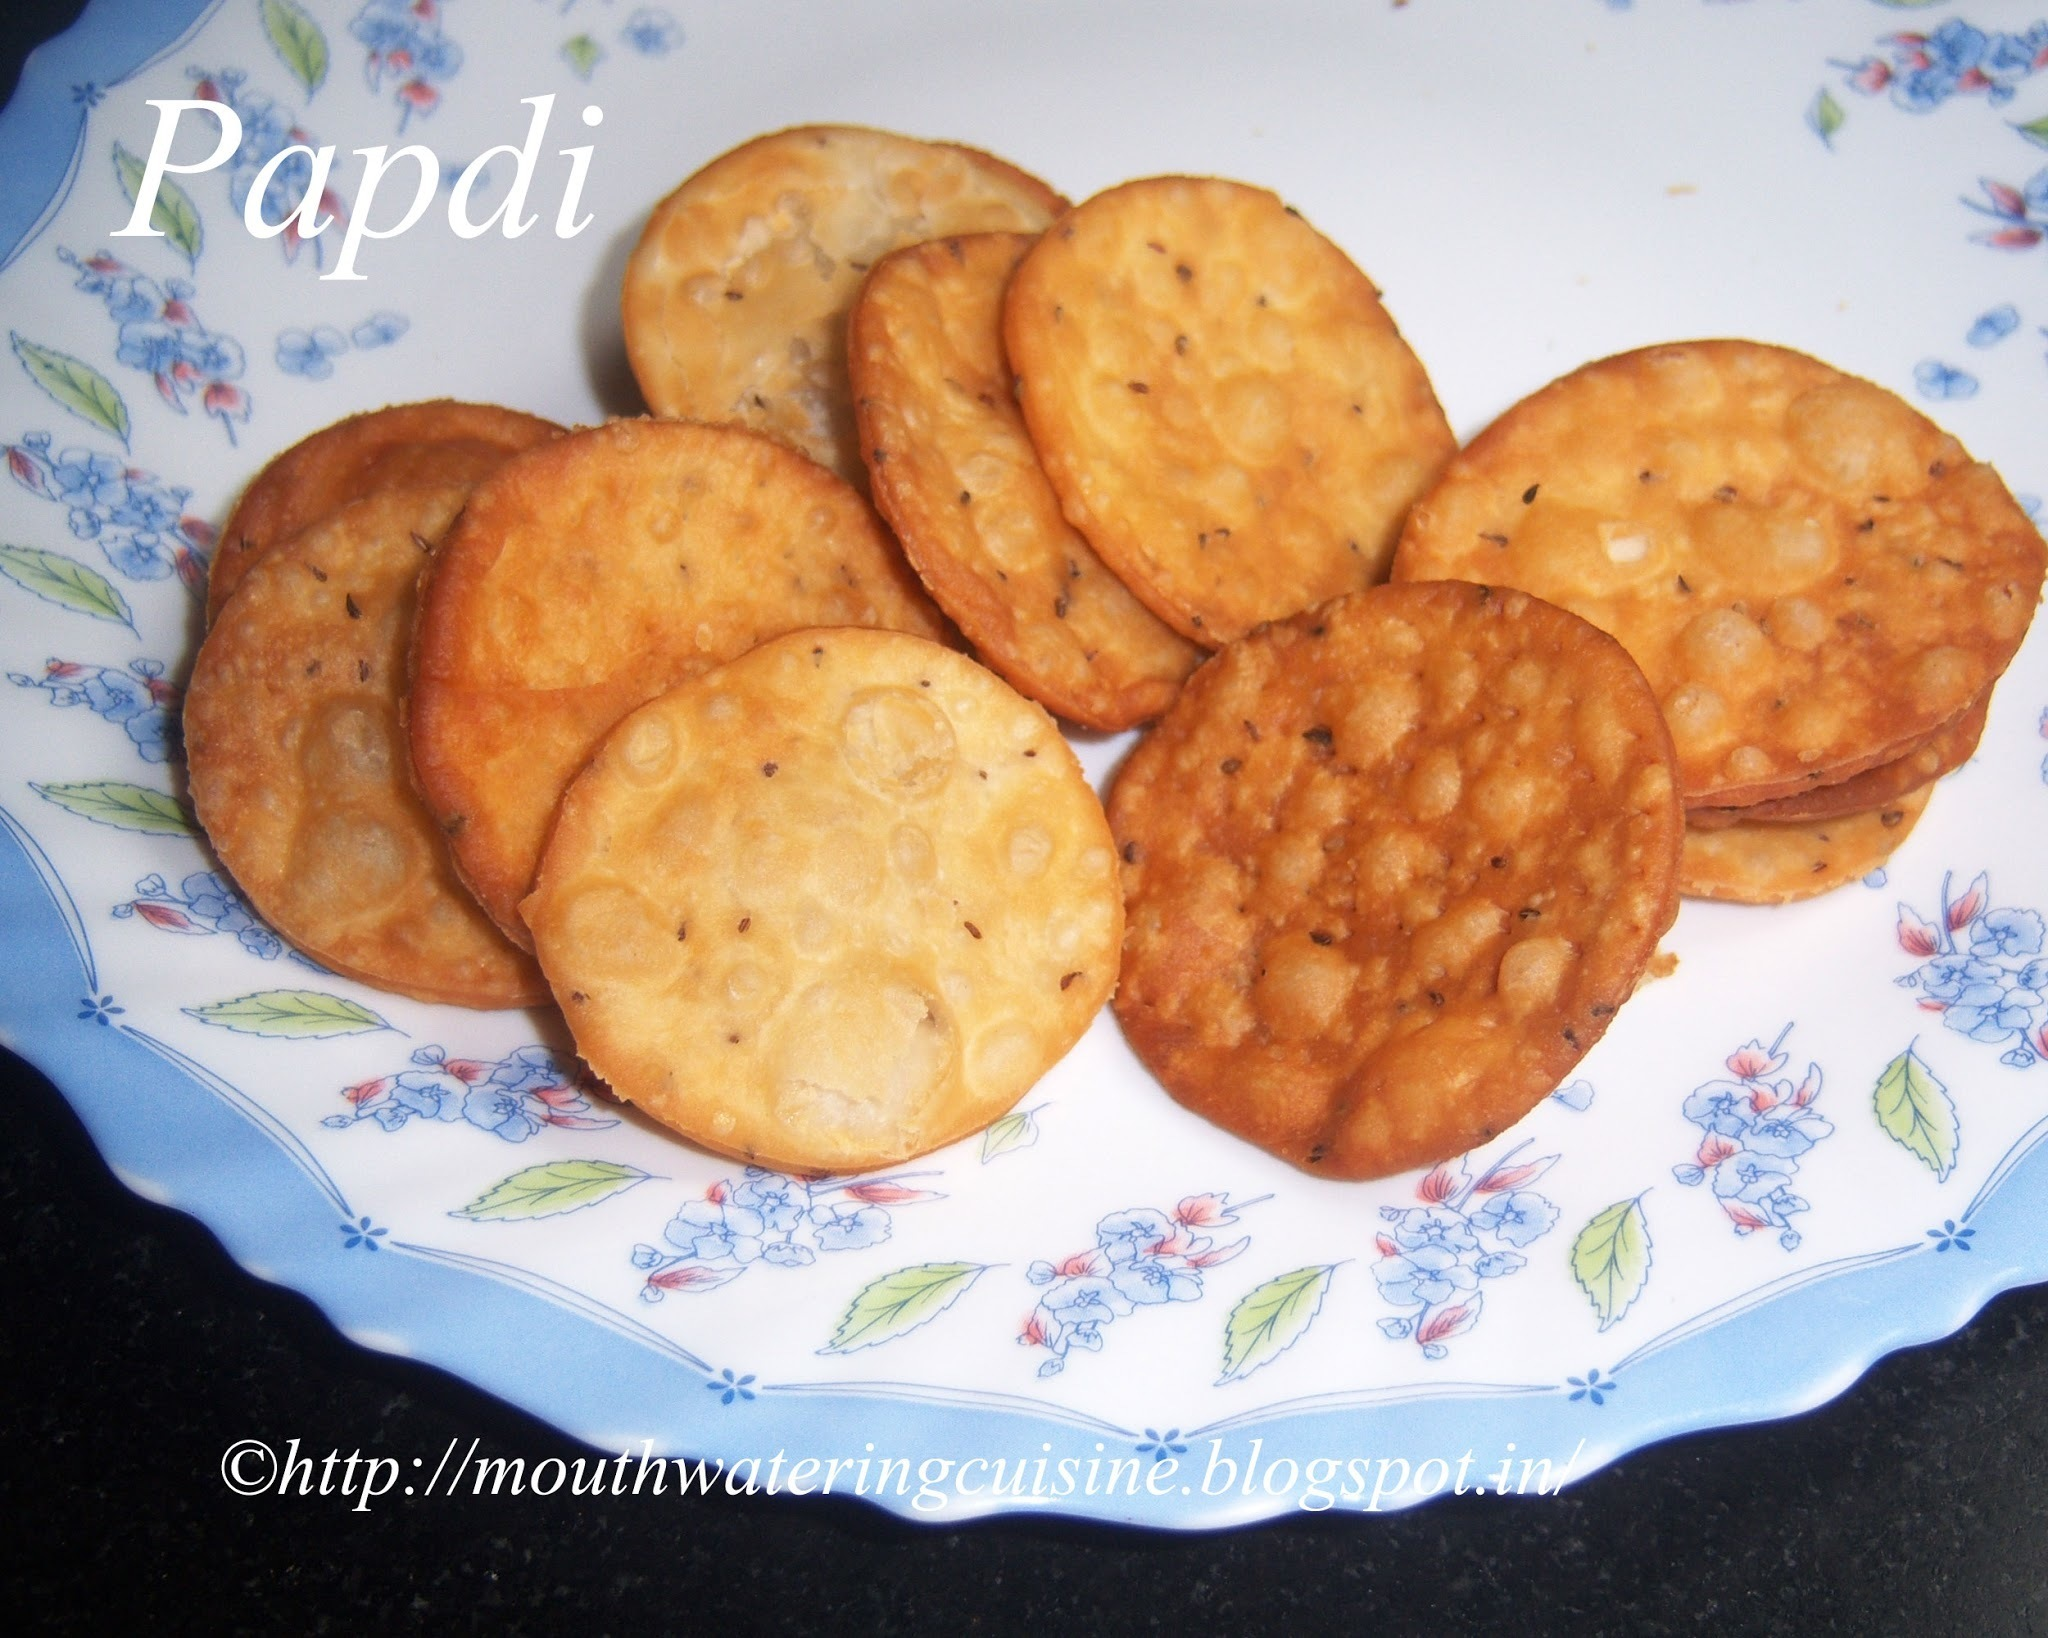 Papdi Recipe -- How to make Fried Papdi Recipe